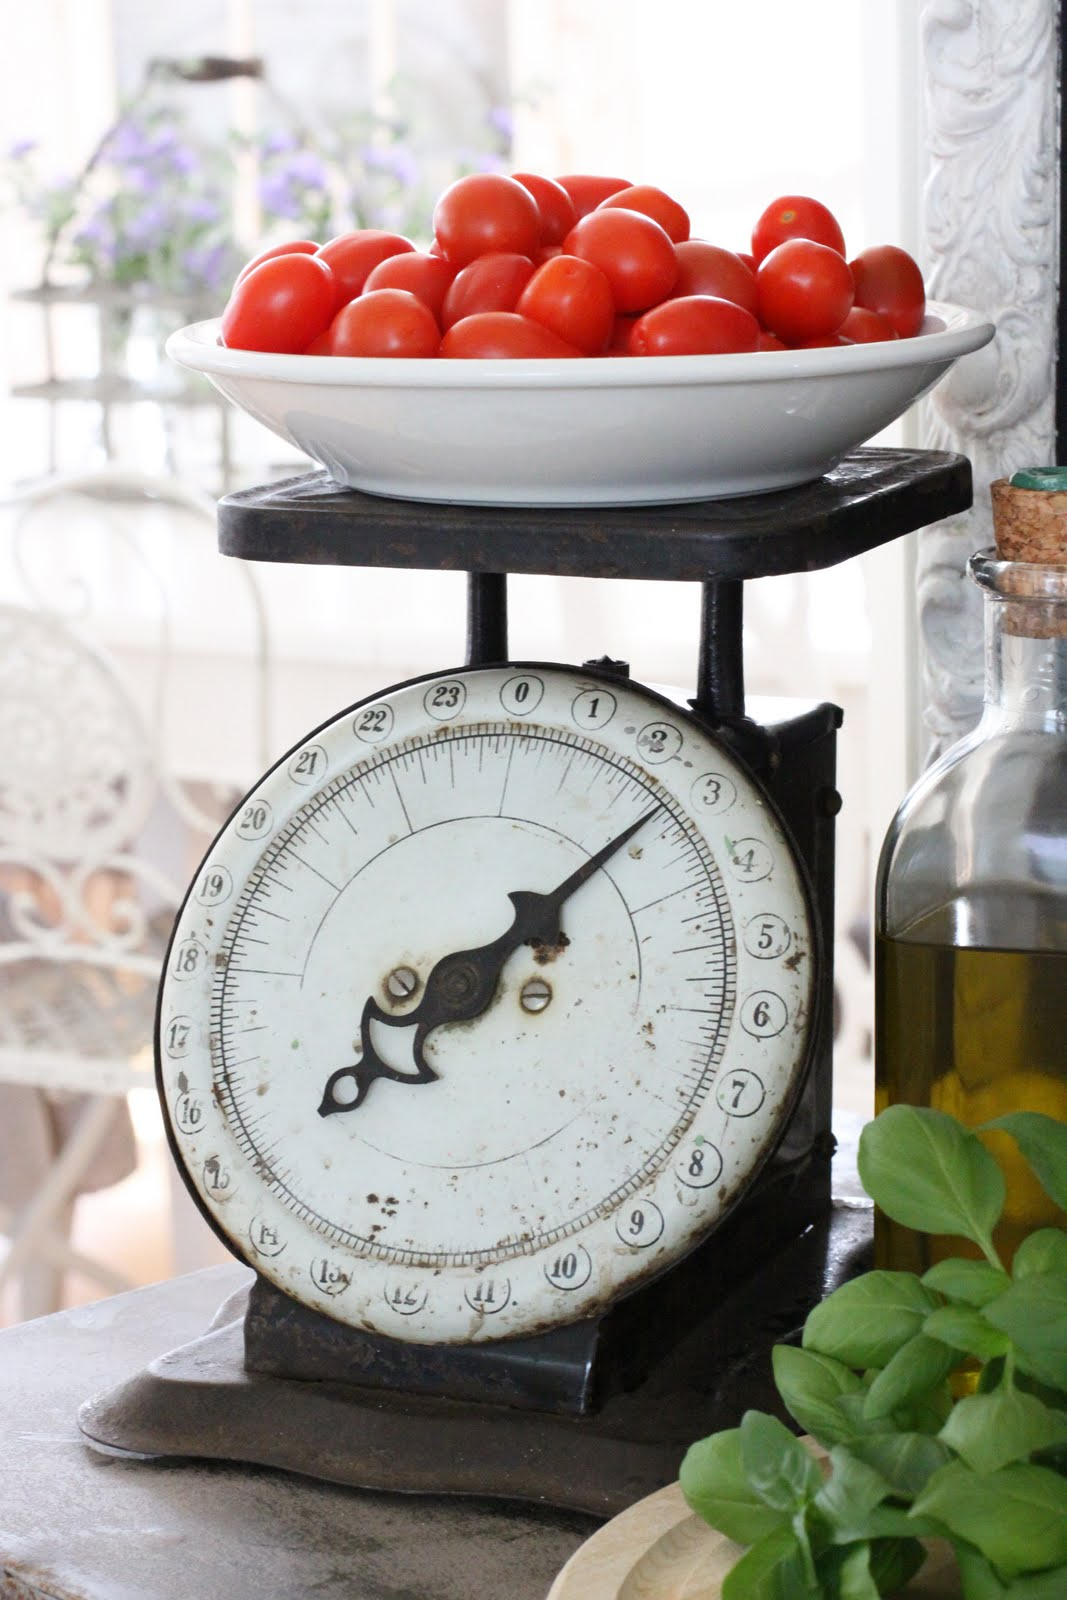 Old fashioned kitchen scale i weigh my food while cooking for How much is a kitchen scale